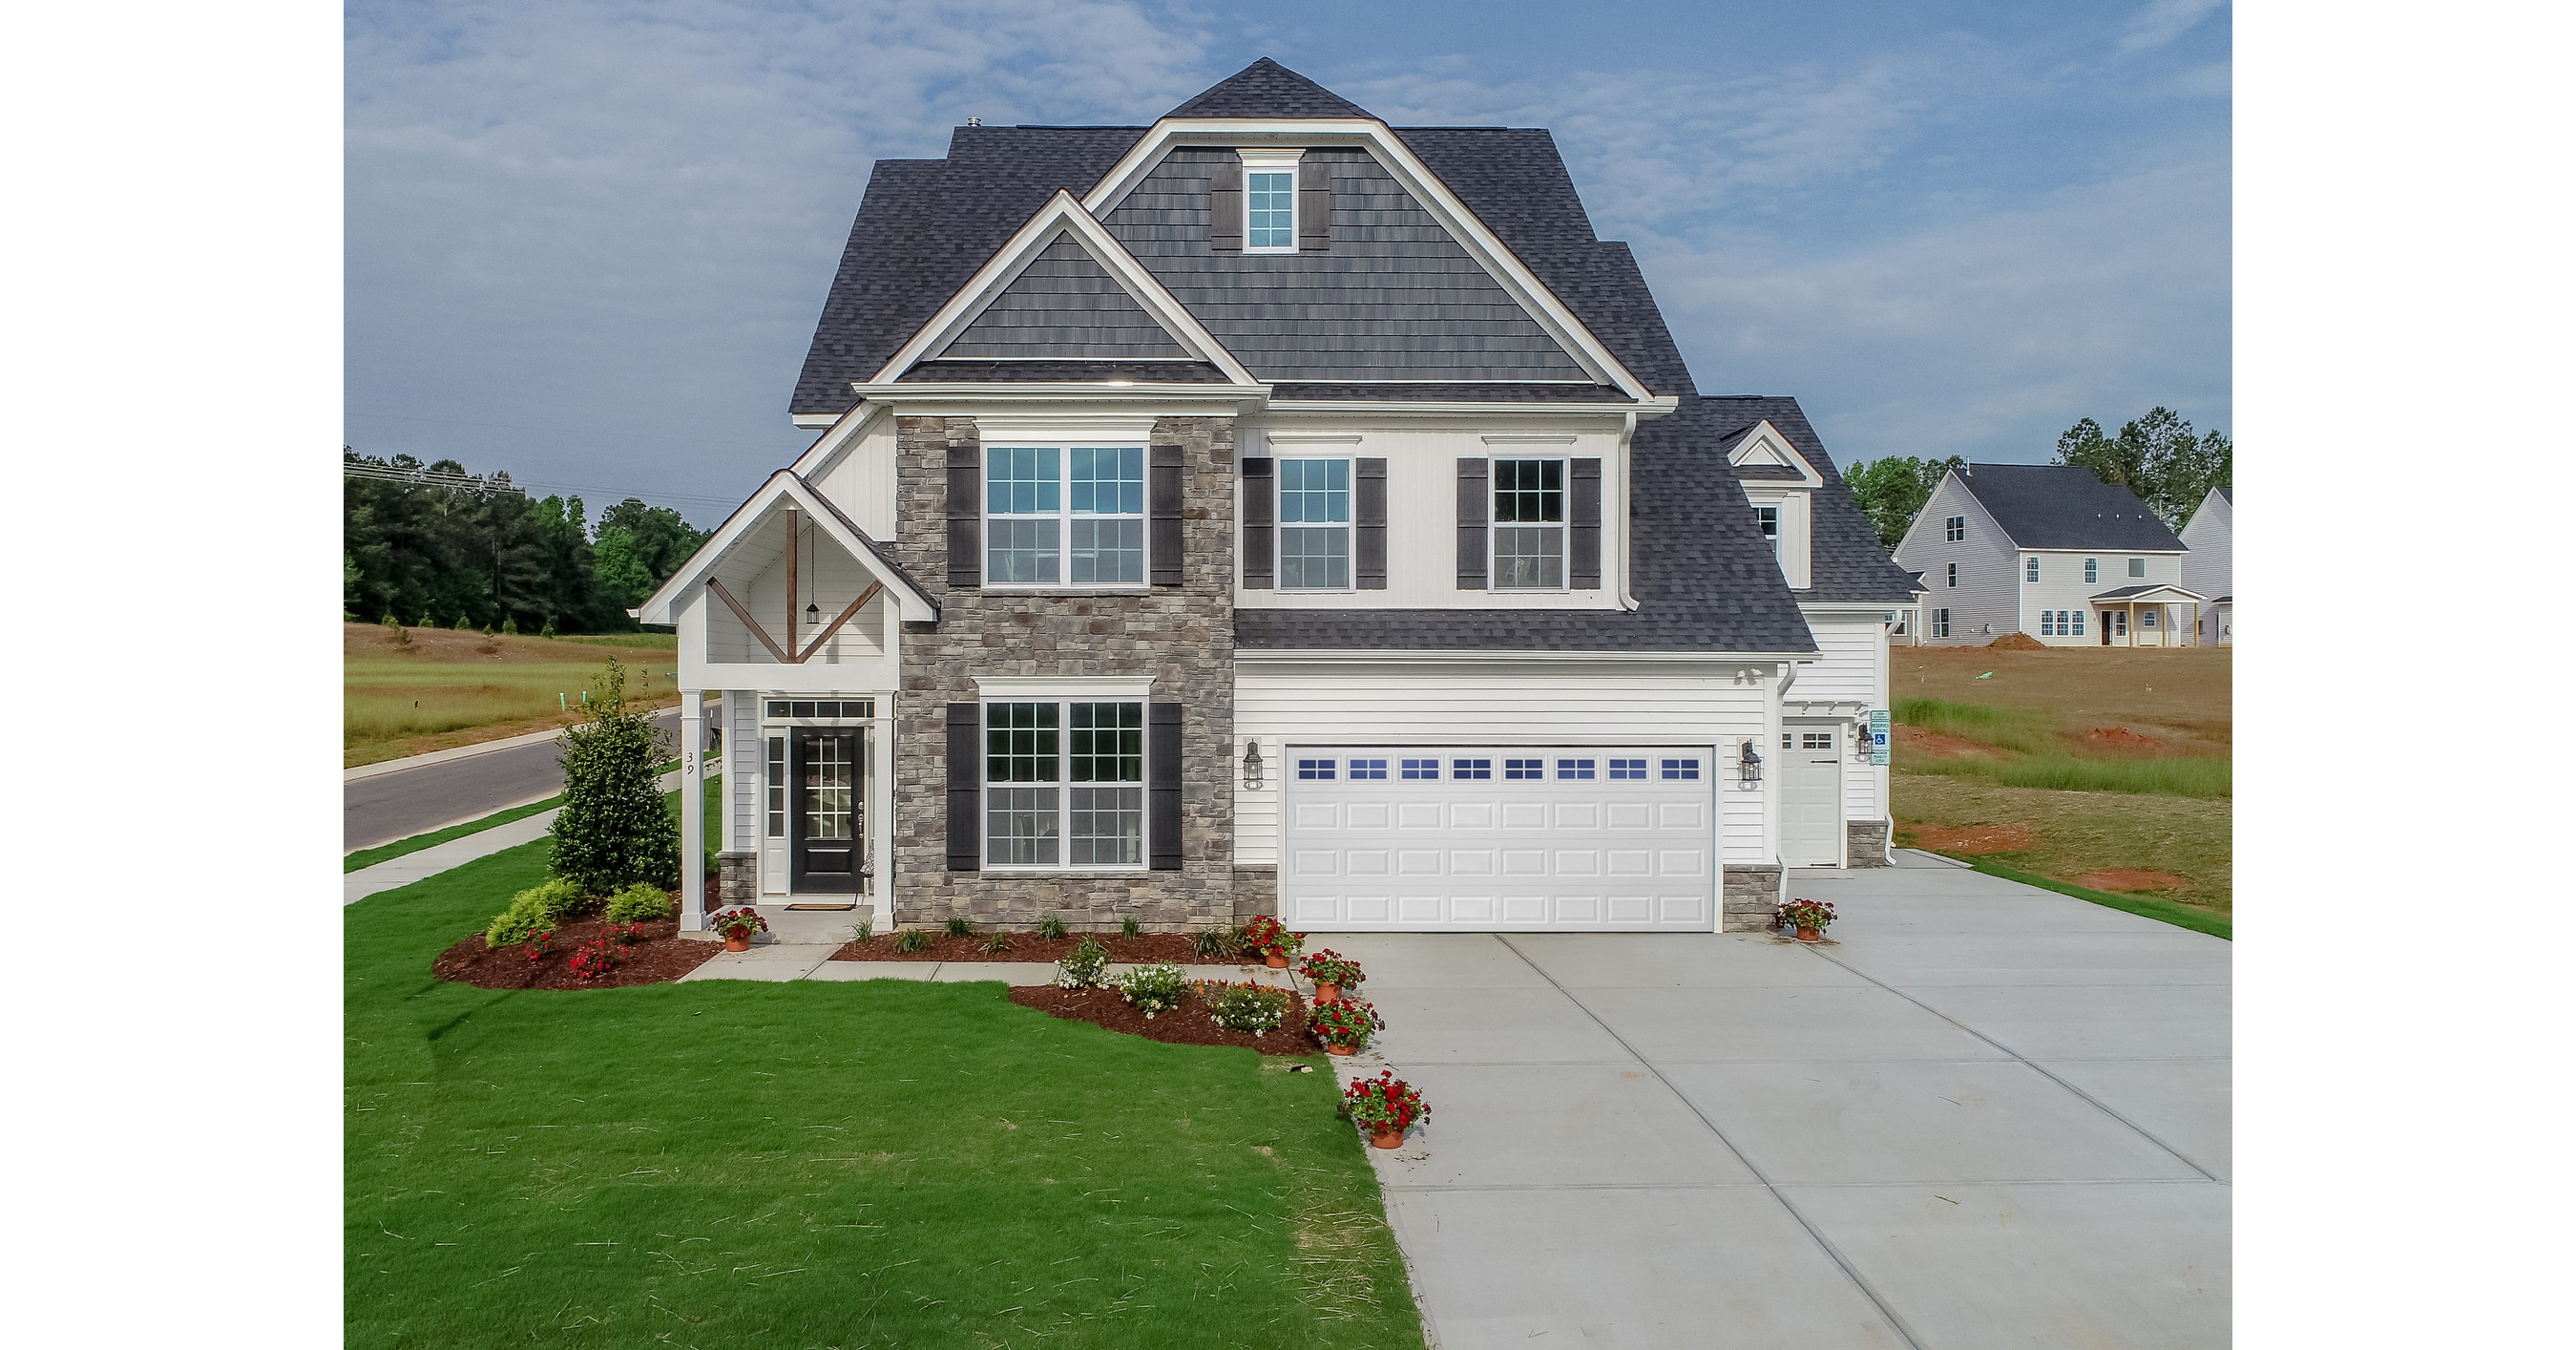 Mattamy Homes is Golden at the Johnston County Parade of Homes on